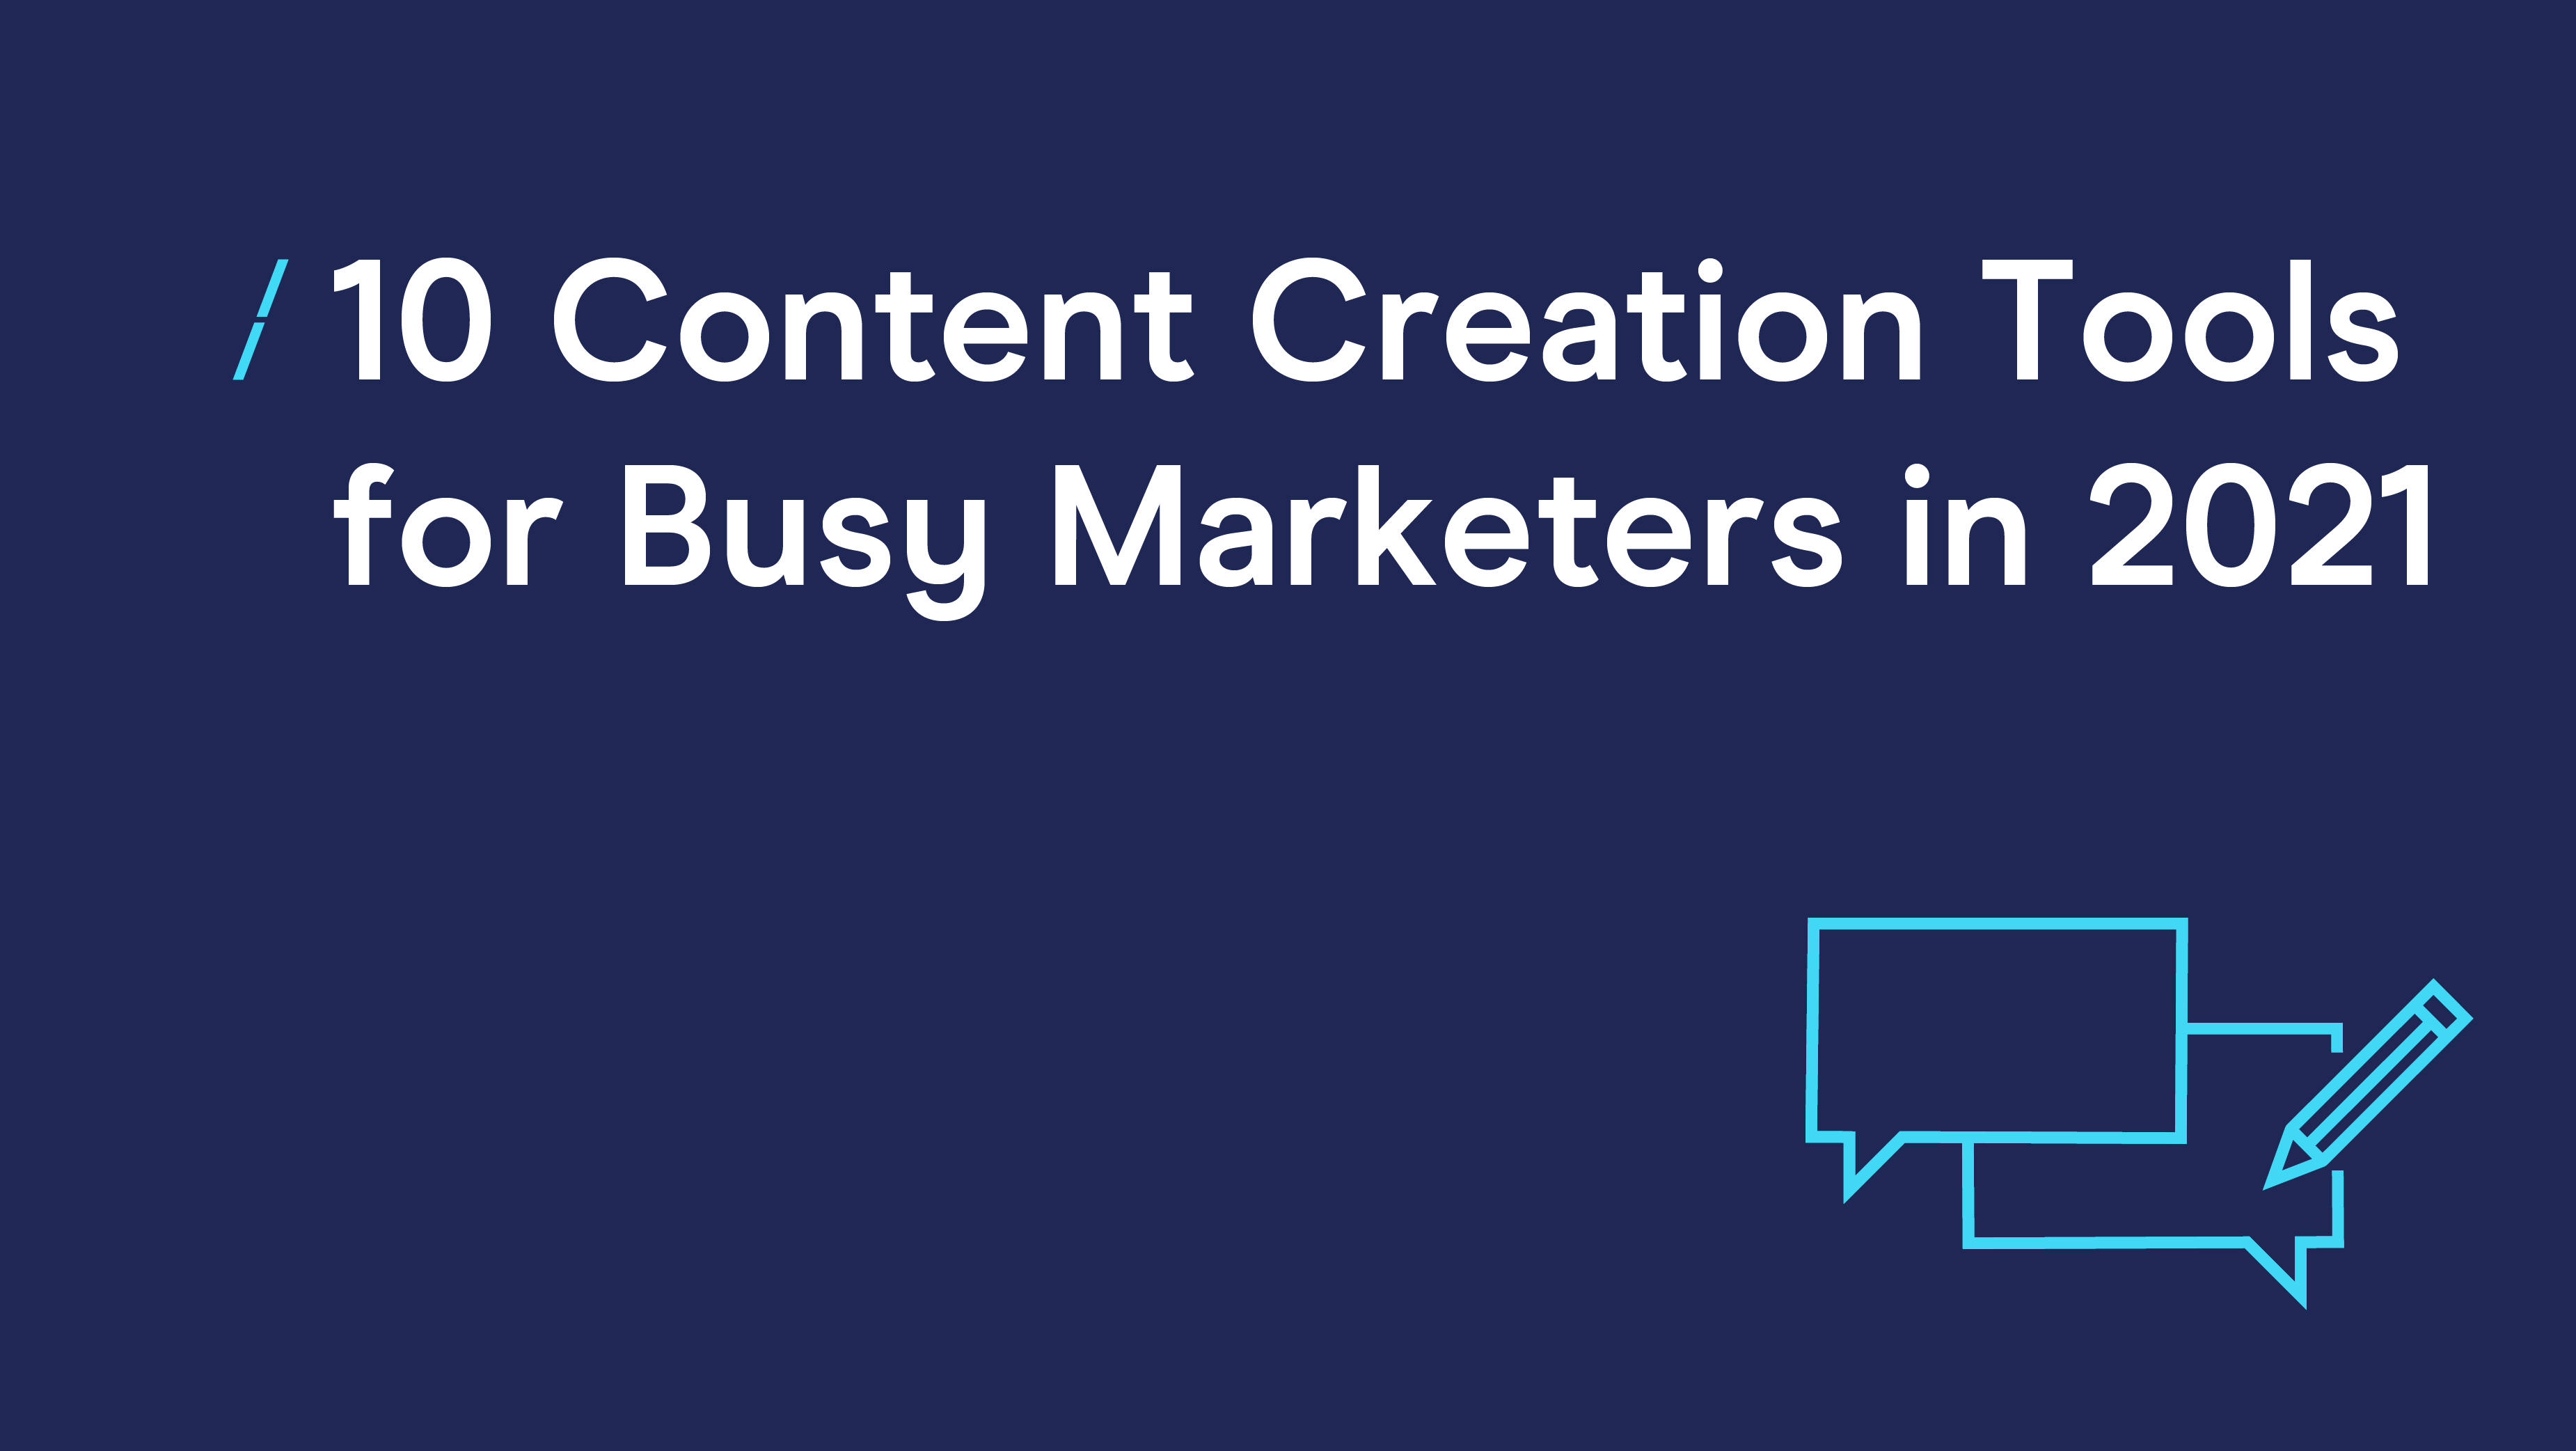 10 Content Creation Tools for Busy Marketers in 2021_IDM copie 2.png